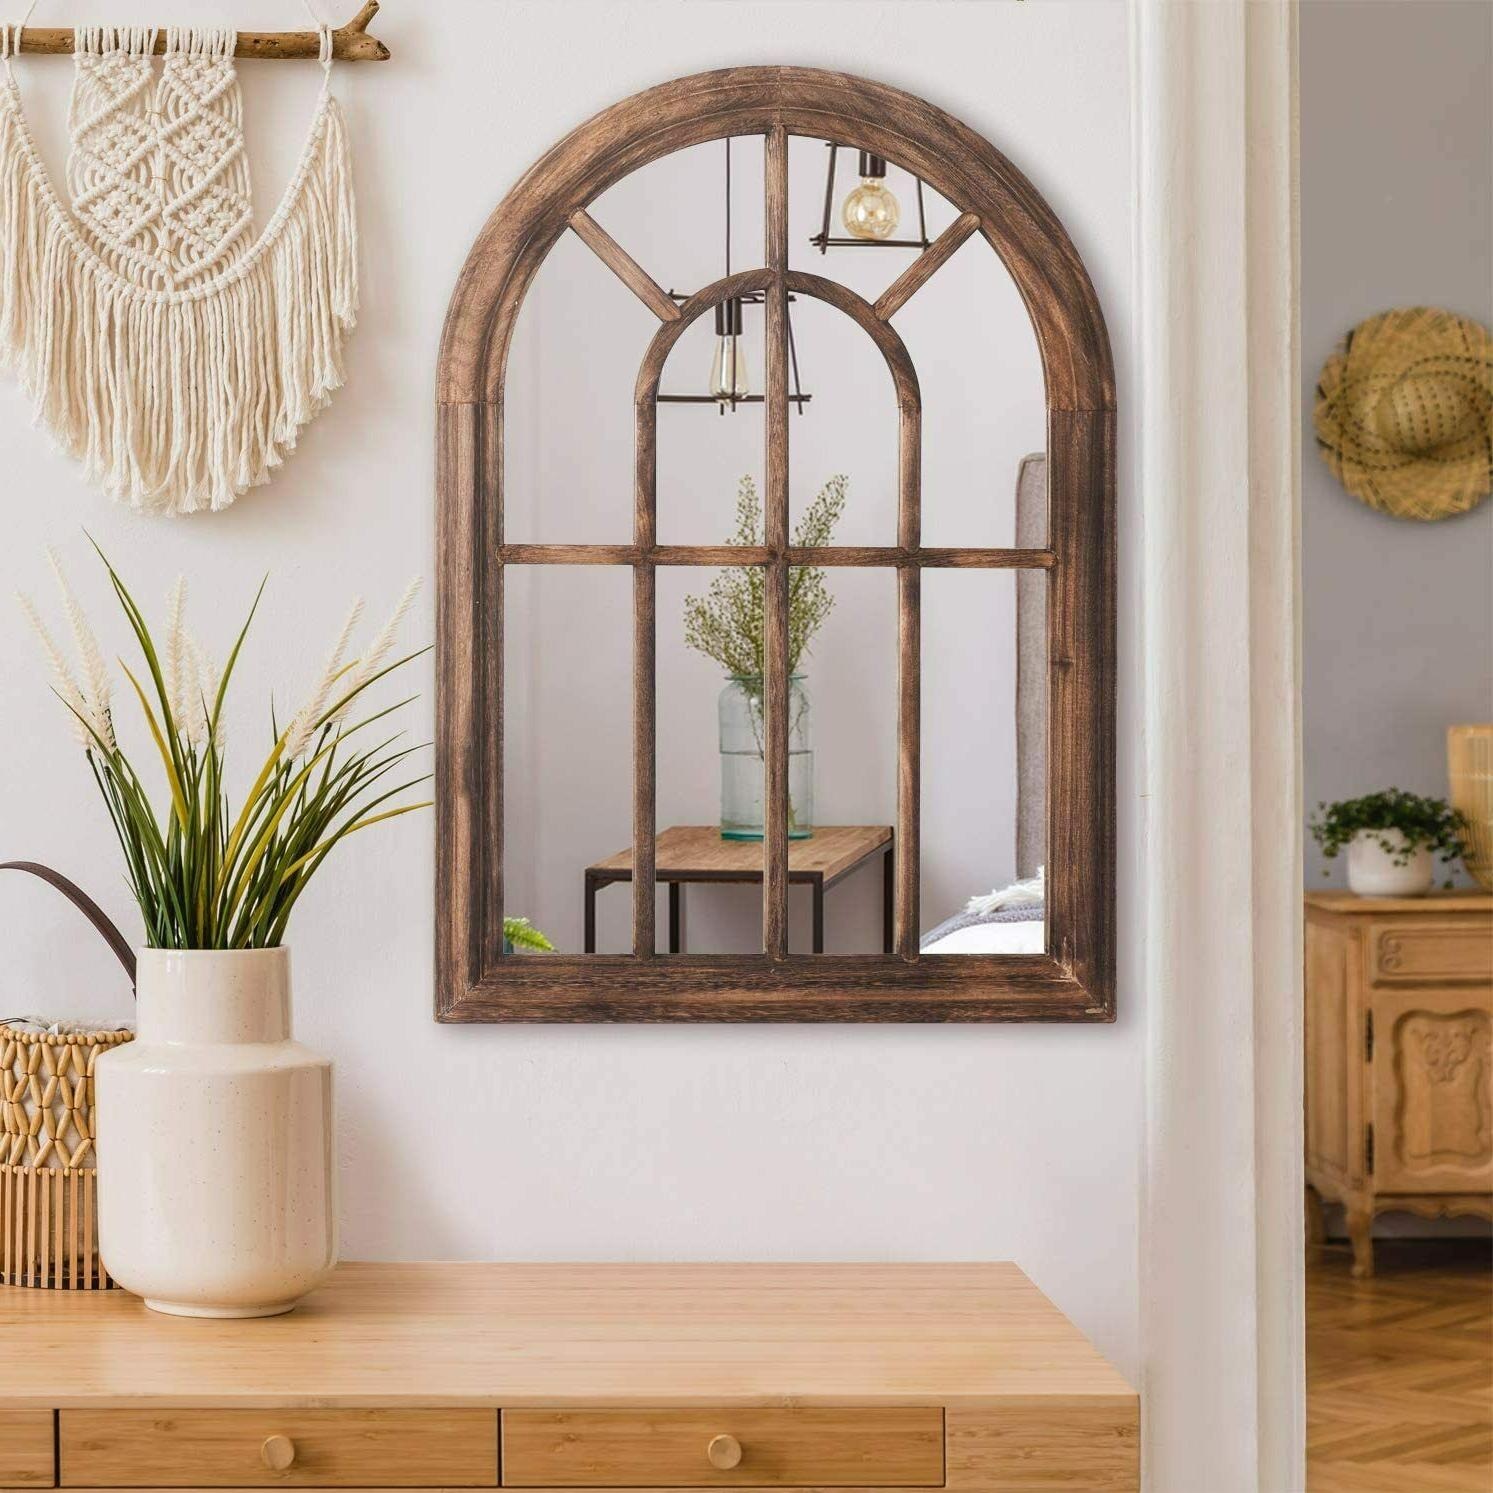 Fashion Mirror Rustic Arched Wall New